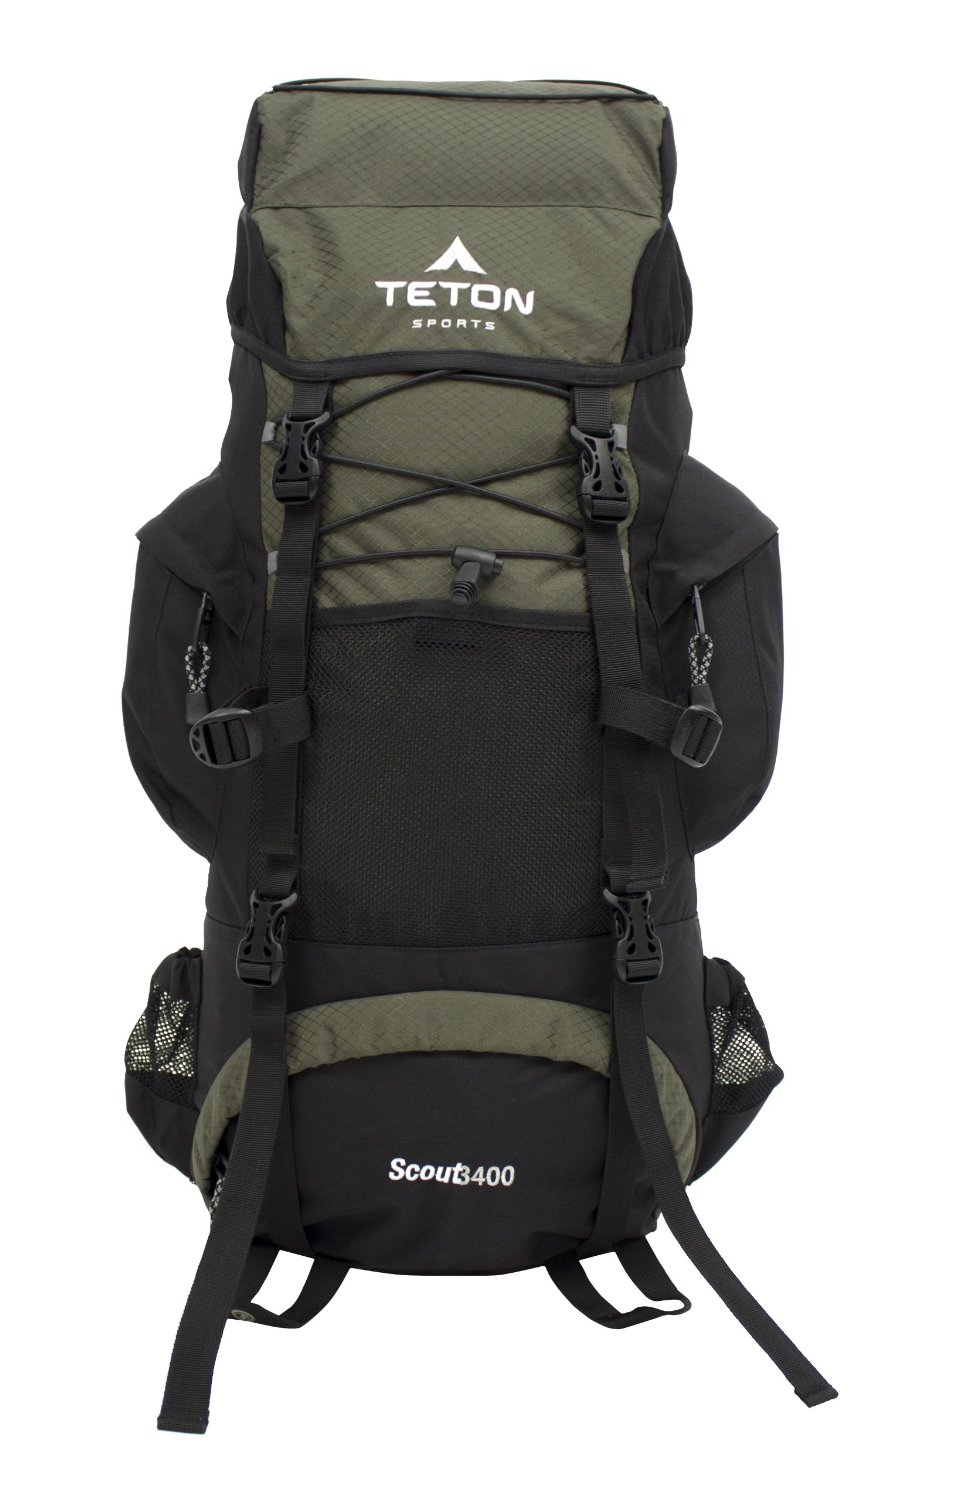 Best Internal Frame Backpacks - Top 3 Backpacks Reviewed